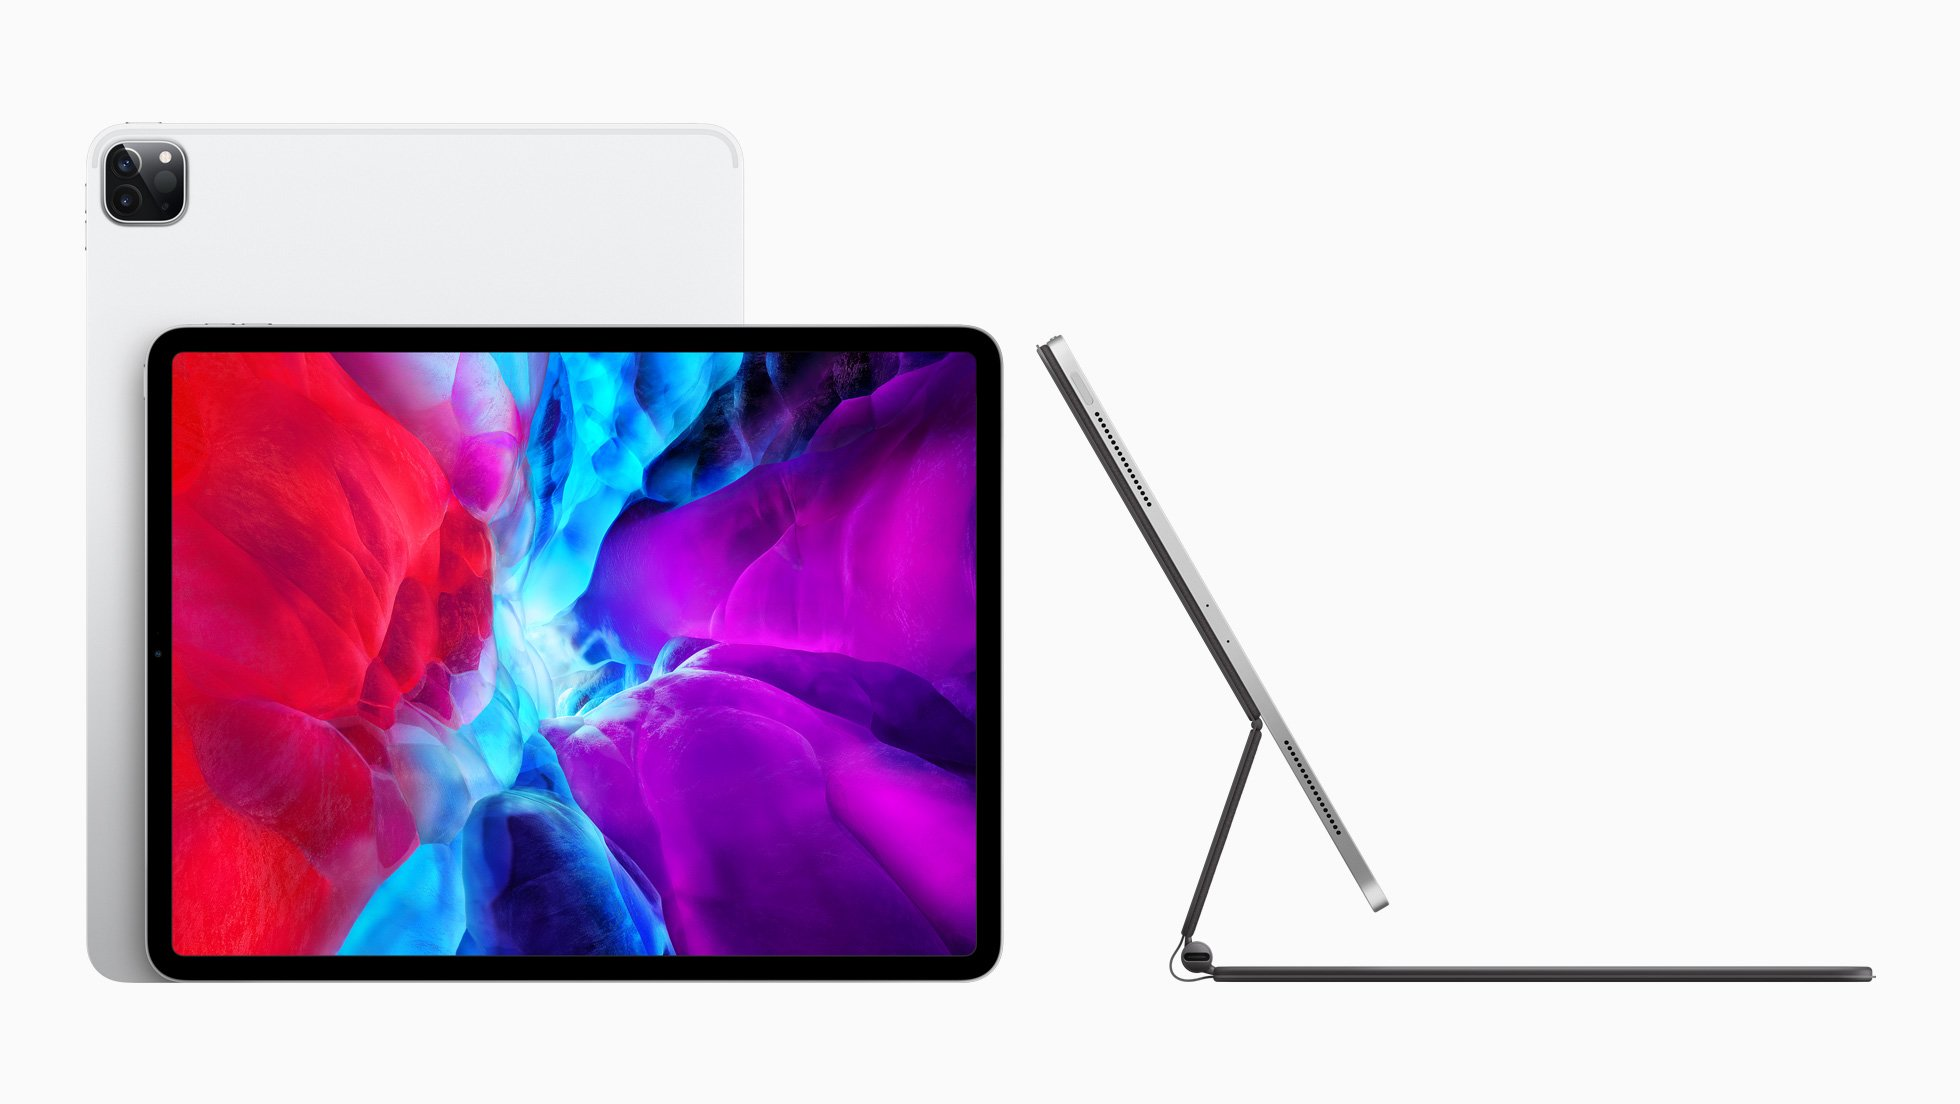 Apple new iPad Pro 03182020